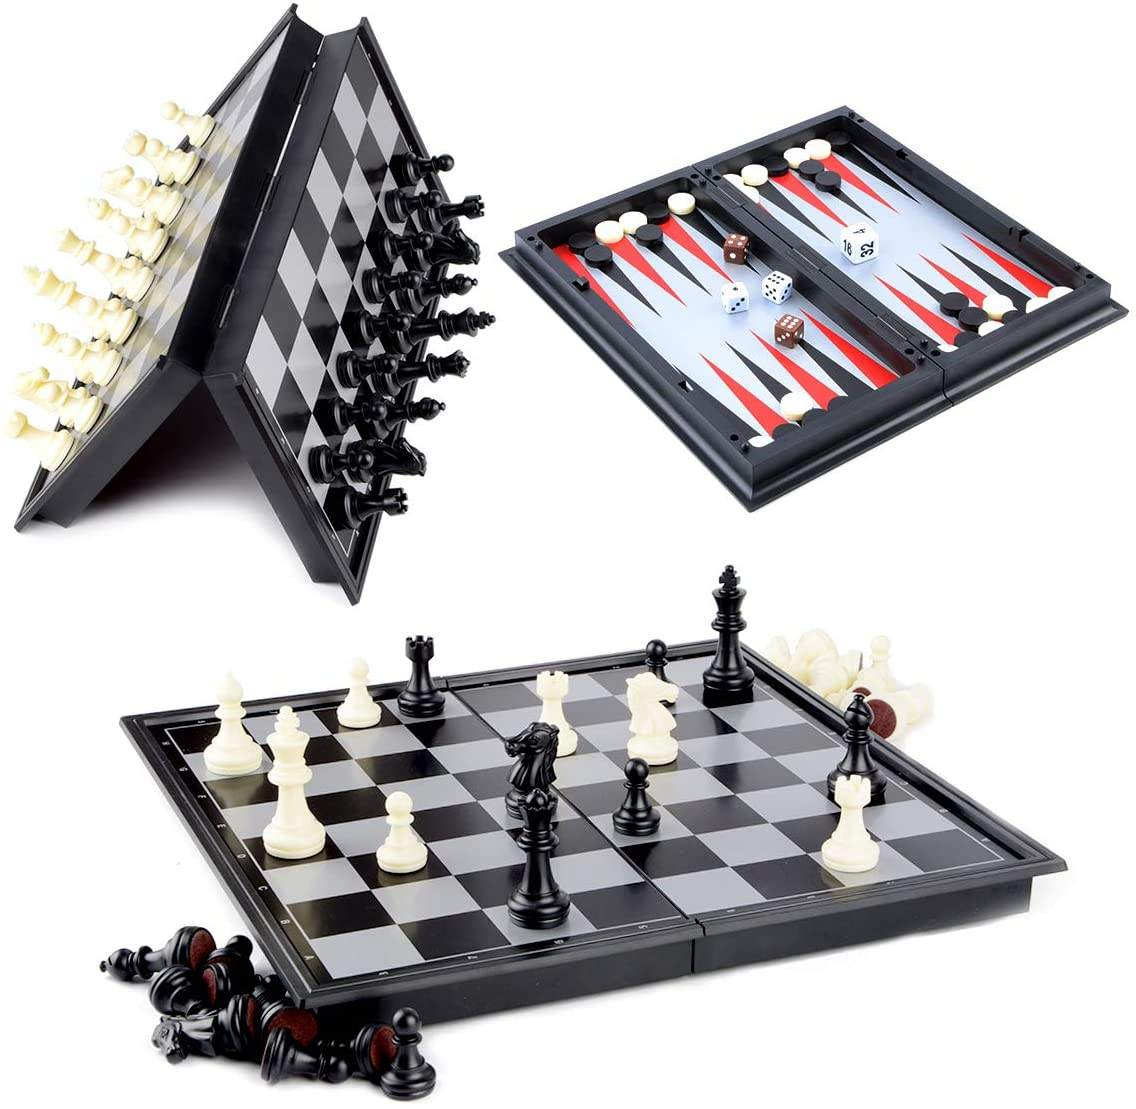 3 in 1 Magnetic Checkers Chess Backgammon Board Game Set with Folding Board Travel Games for Kids and Adults